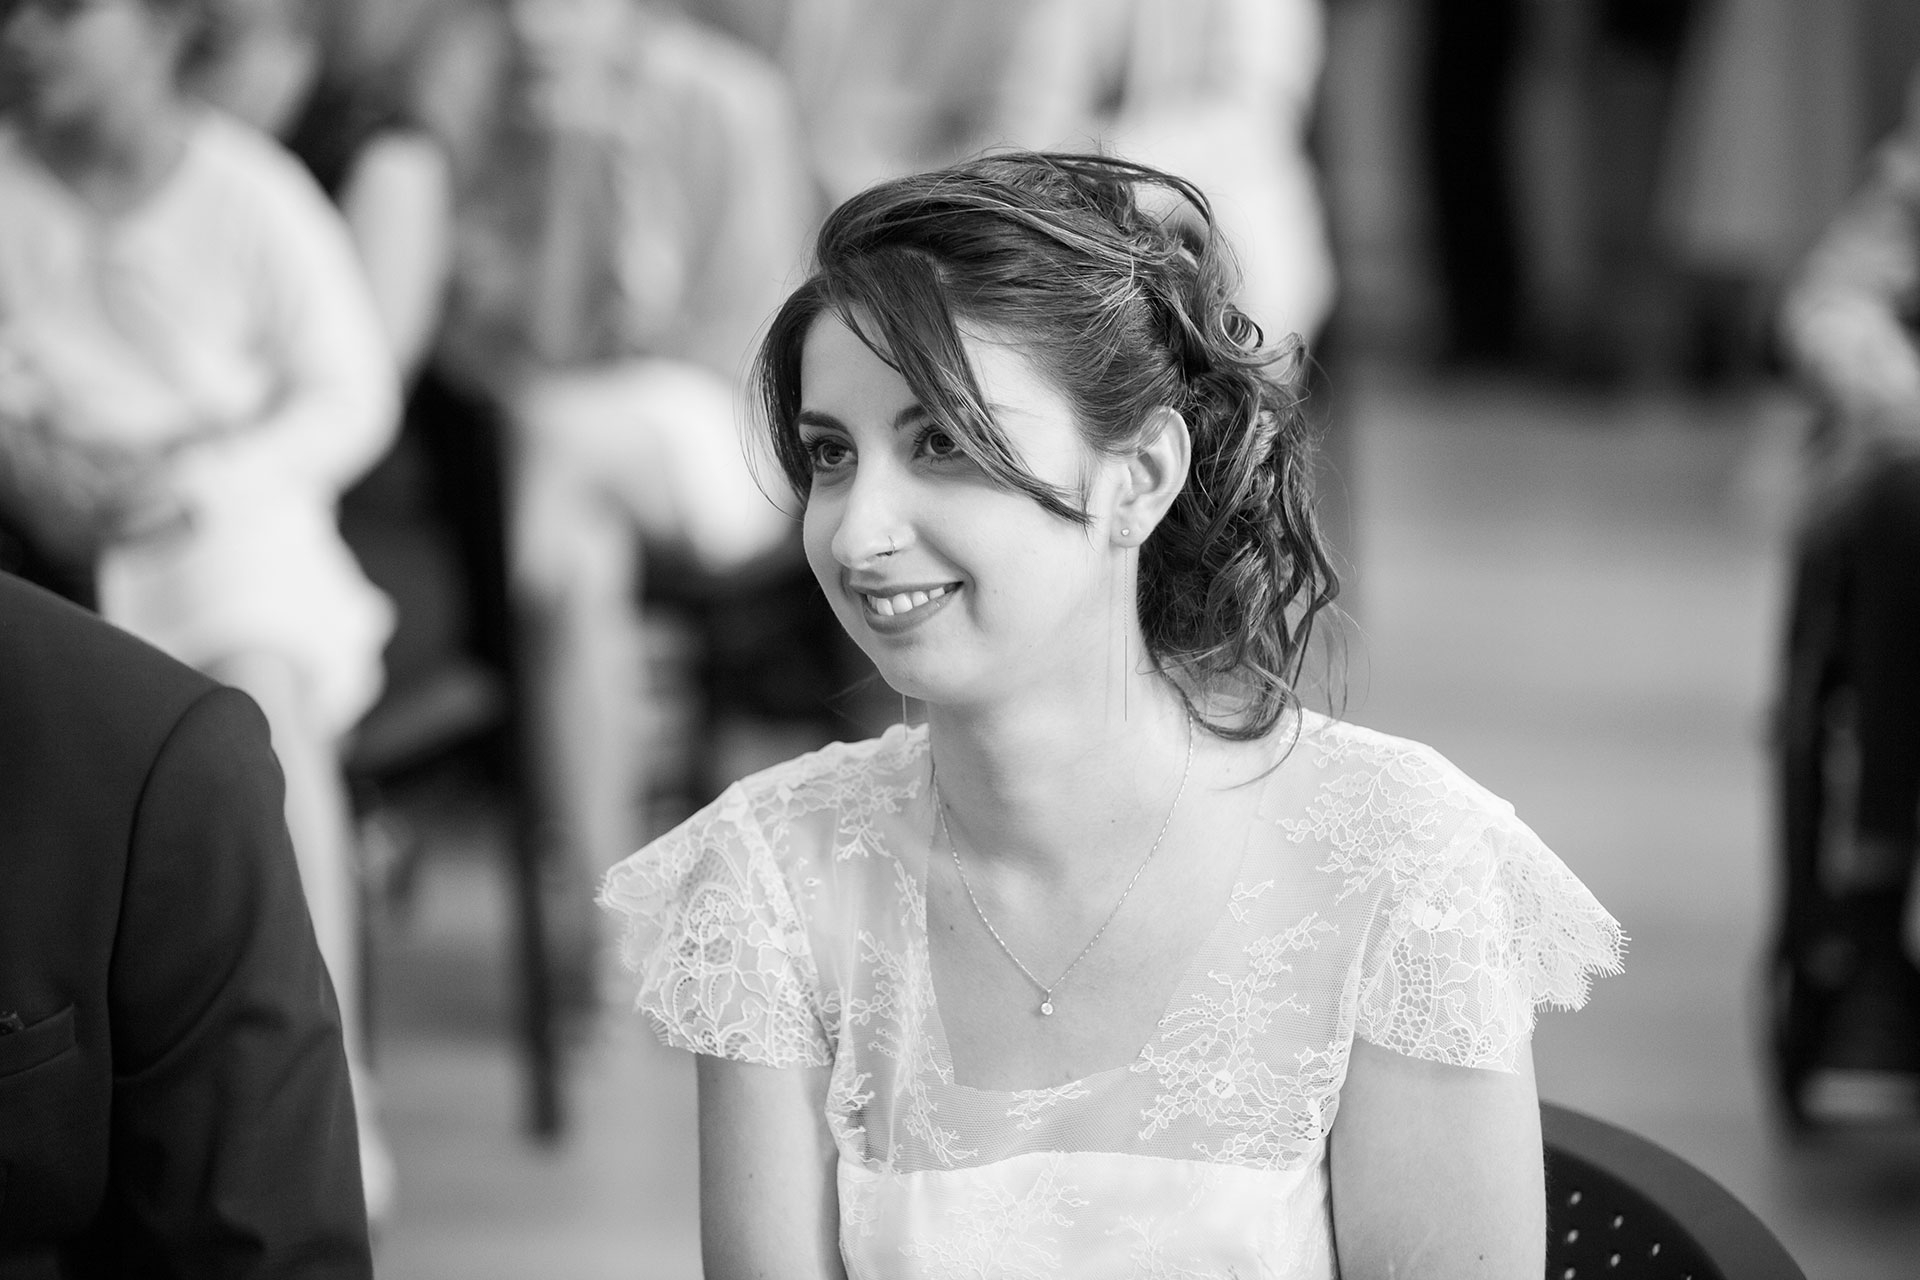 particuliers-evenements-mariages-oui-clementine&alexandre-22